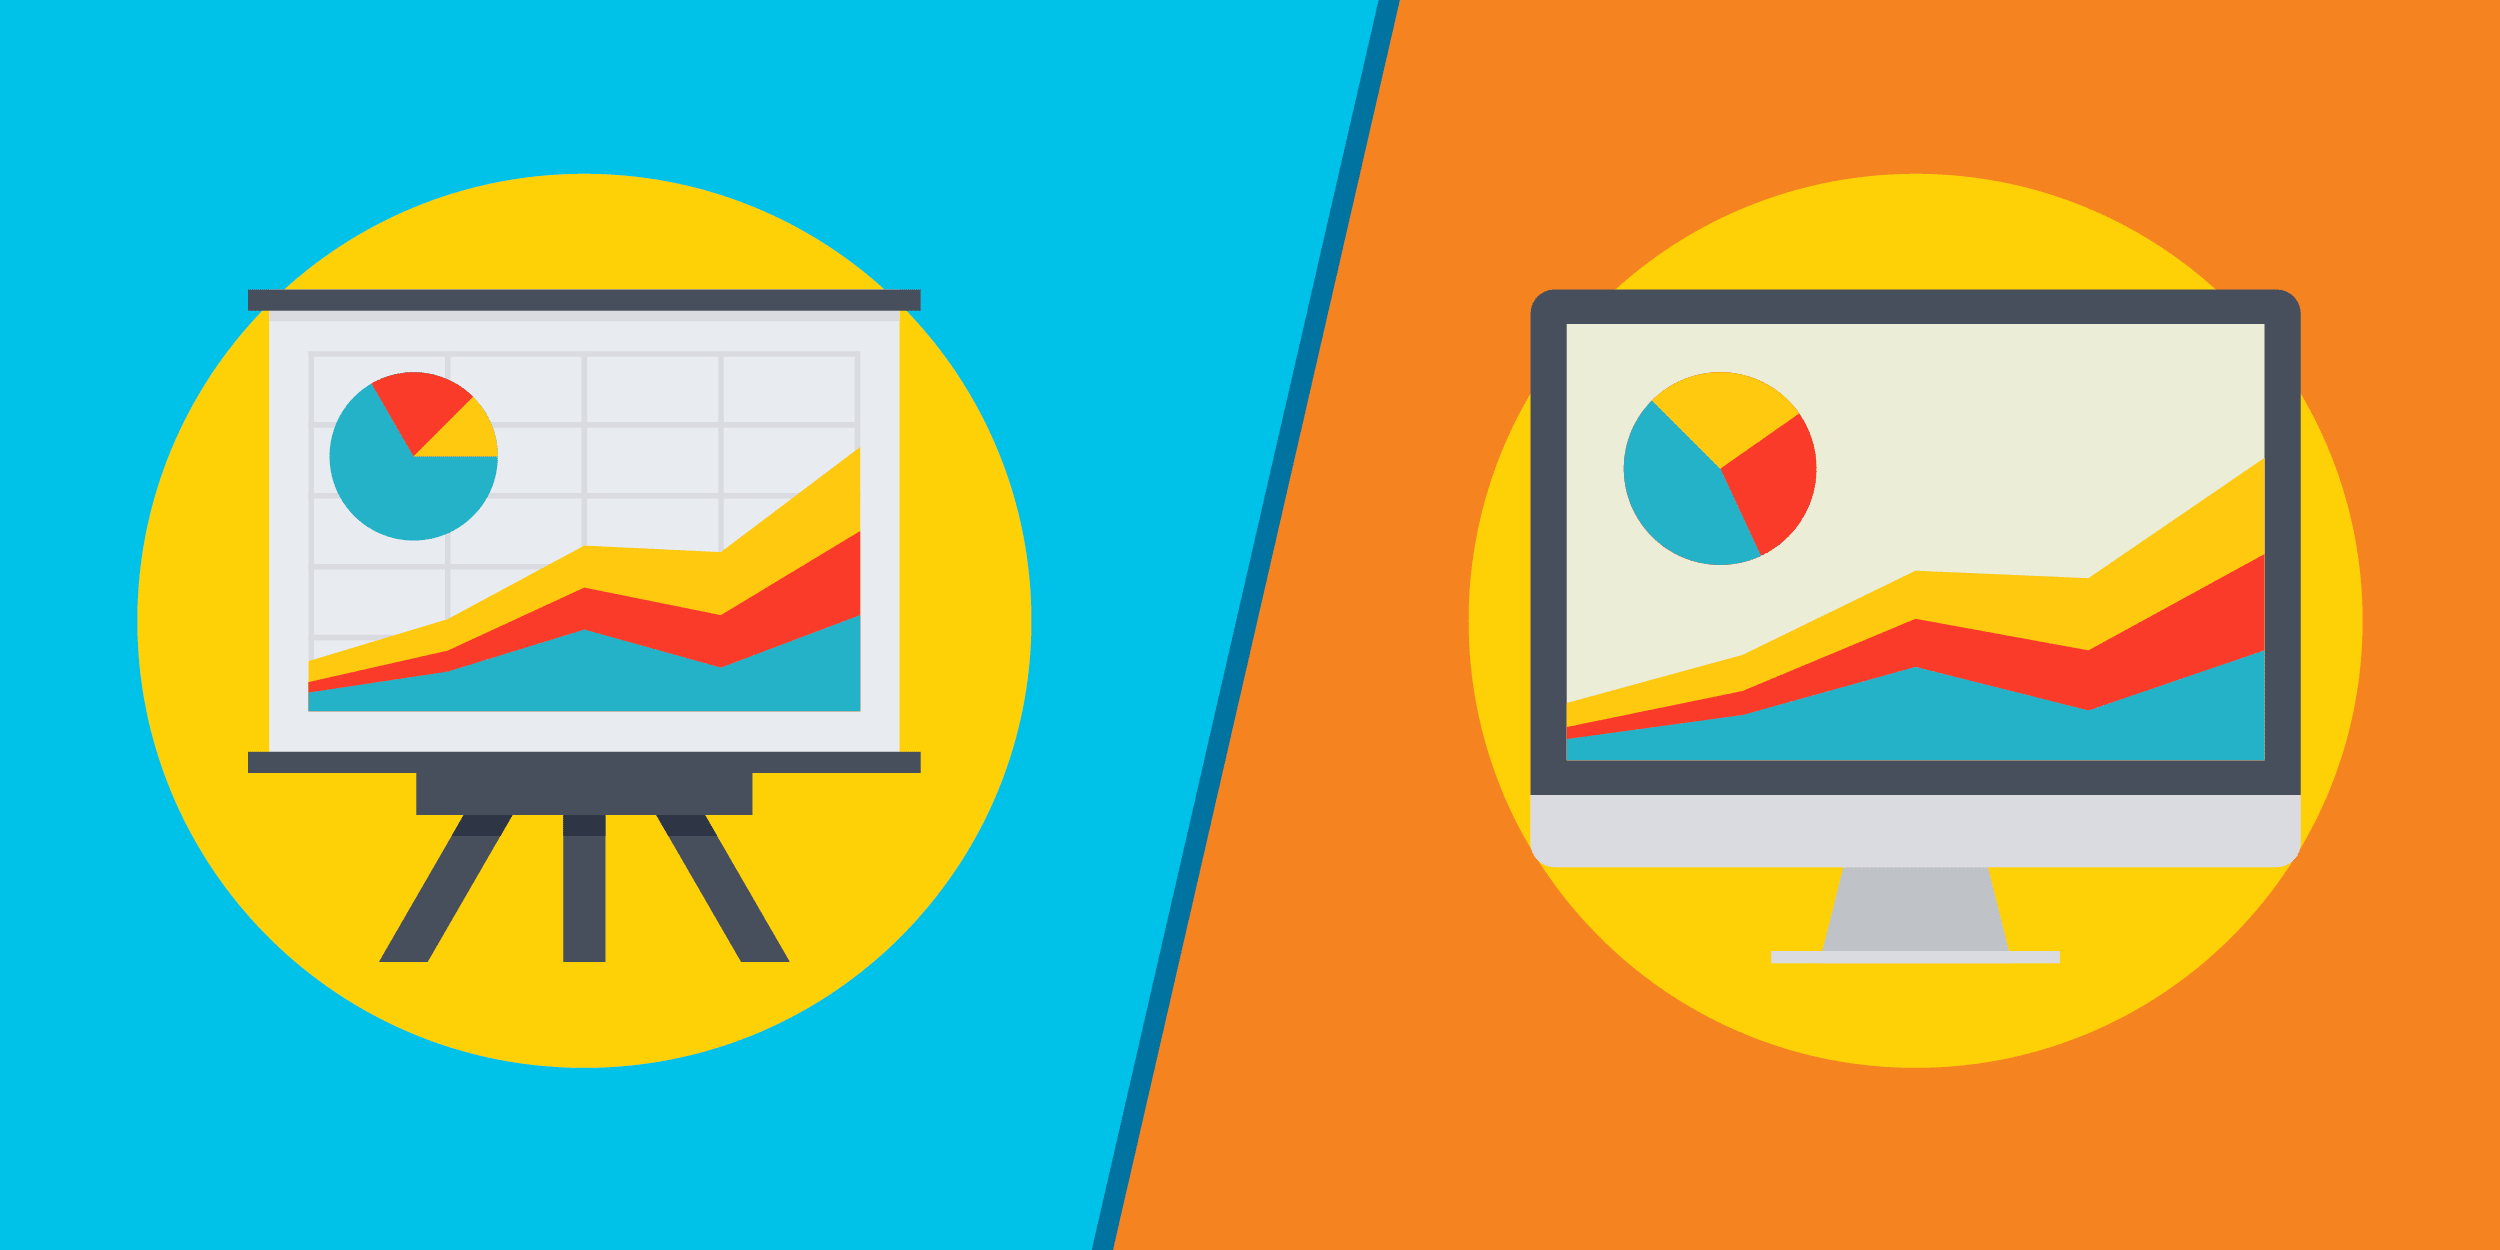 illustration of pie and line charts on an easel compared to financial charts on a computer, representing the need for new nonprofit accounting or financial management software